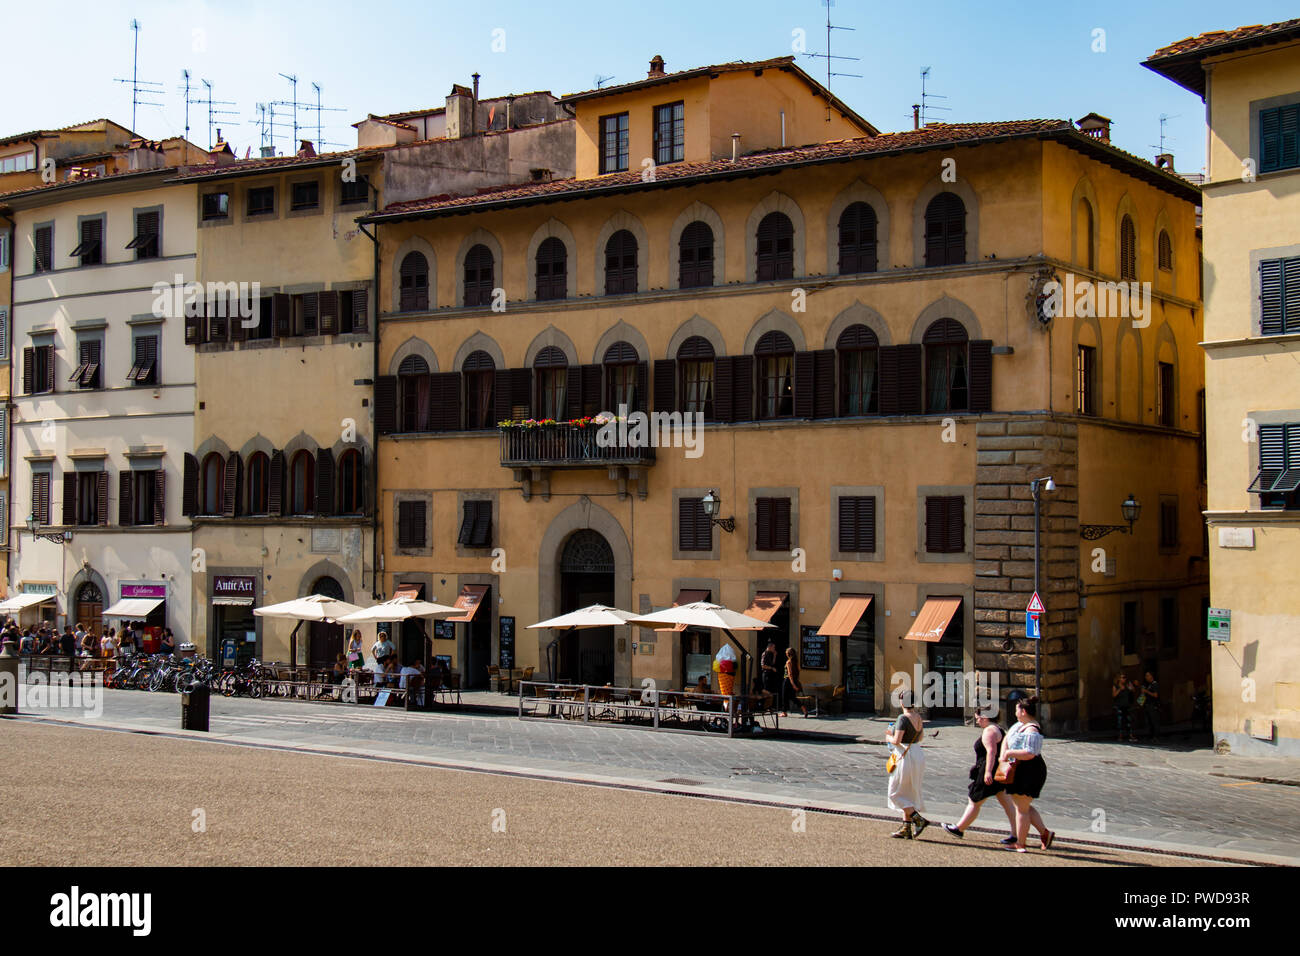 Timeworn buildings line the road opposite the Pitti Palace in Florence, Italy. - Stock Image